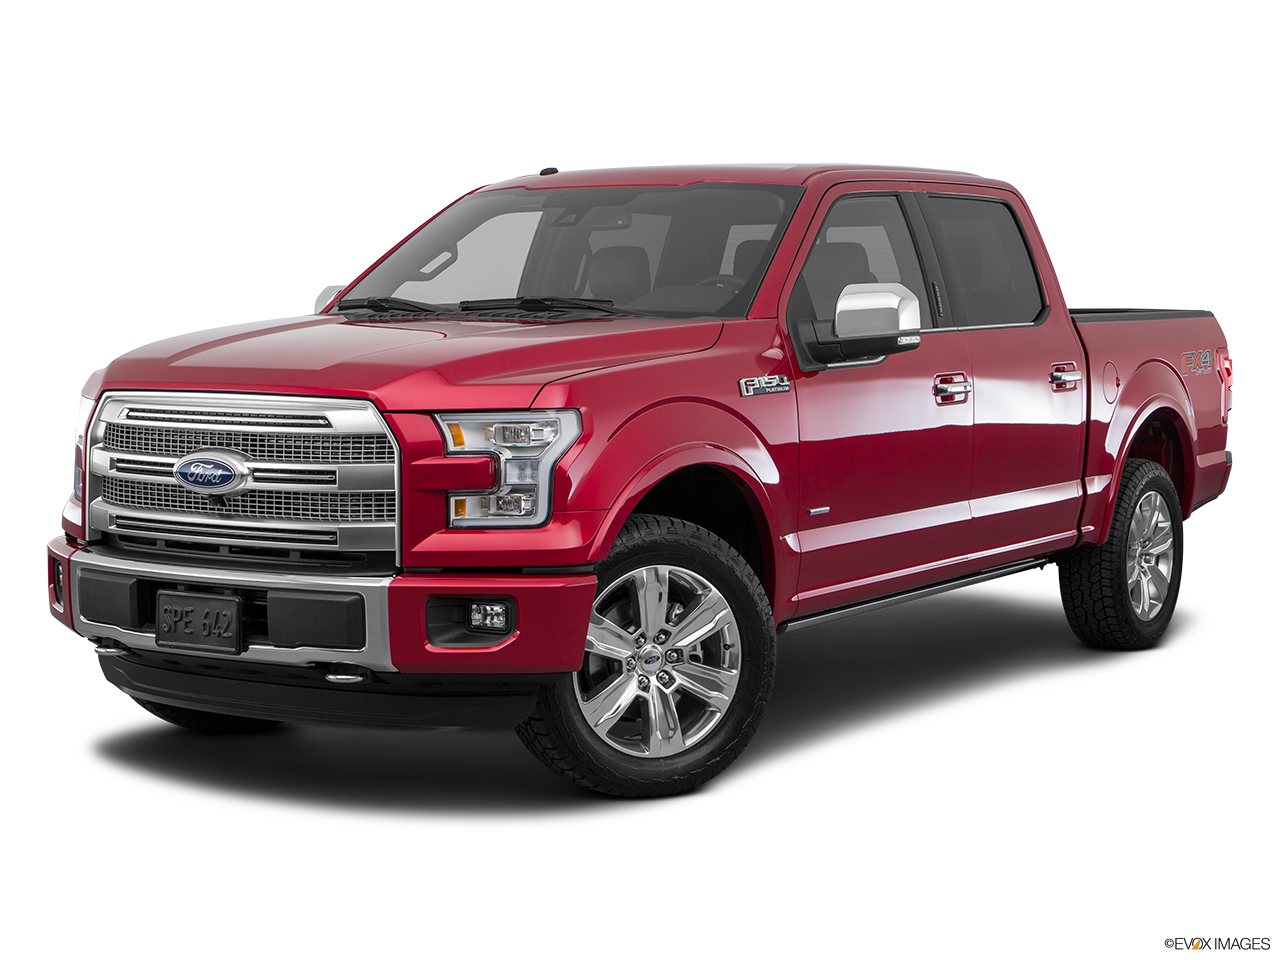 Test Drive A 2016 Ford F-150 at Hoffman Ford in Harrisburg